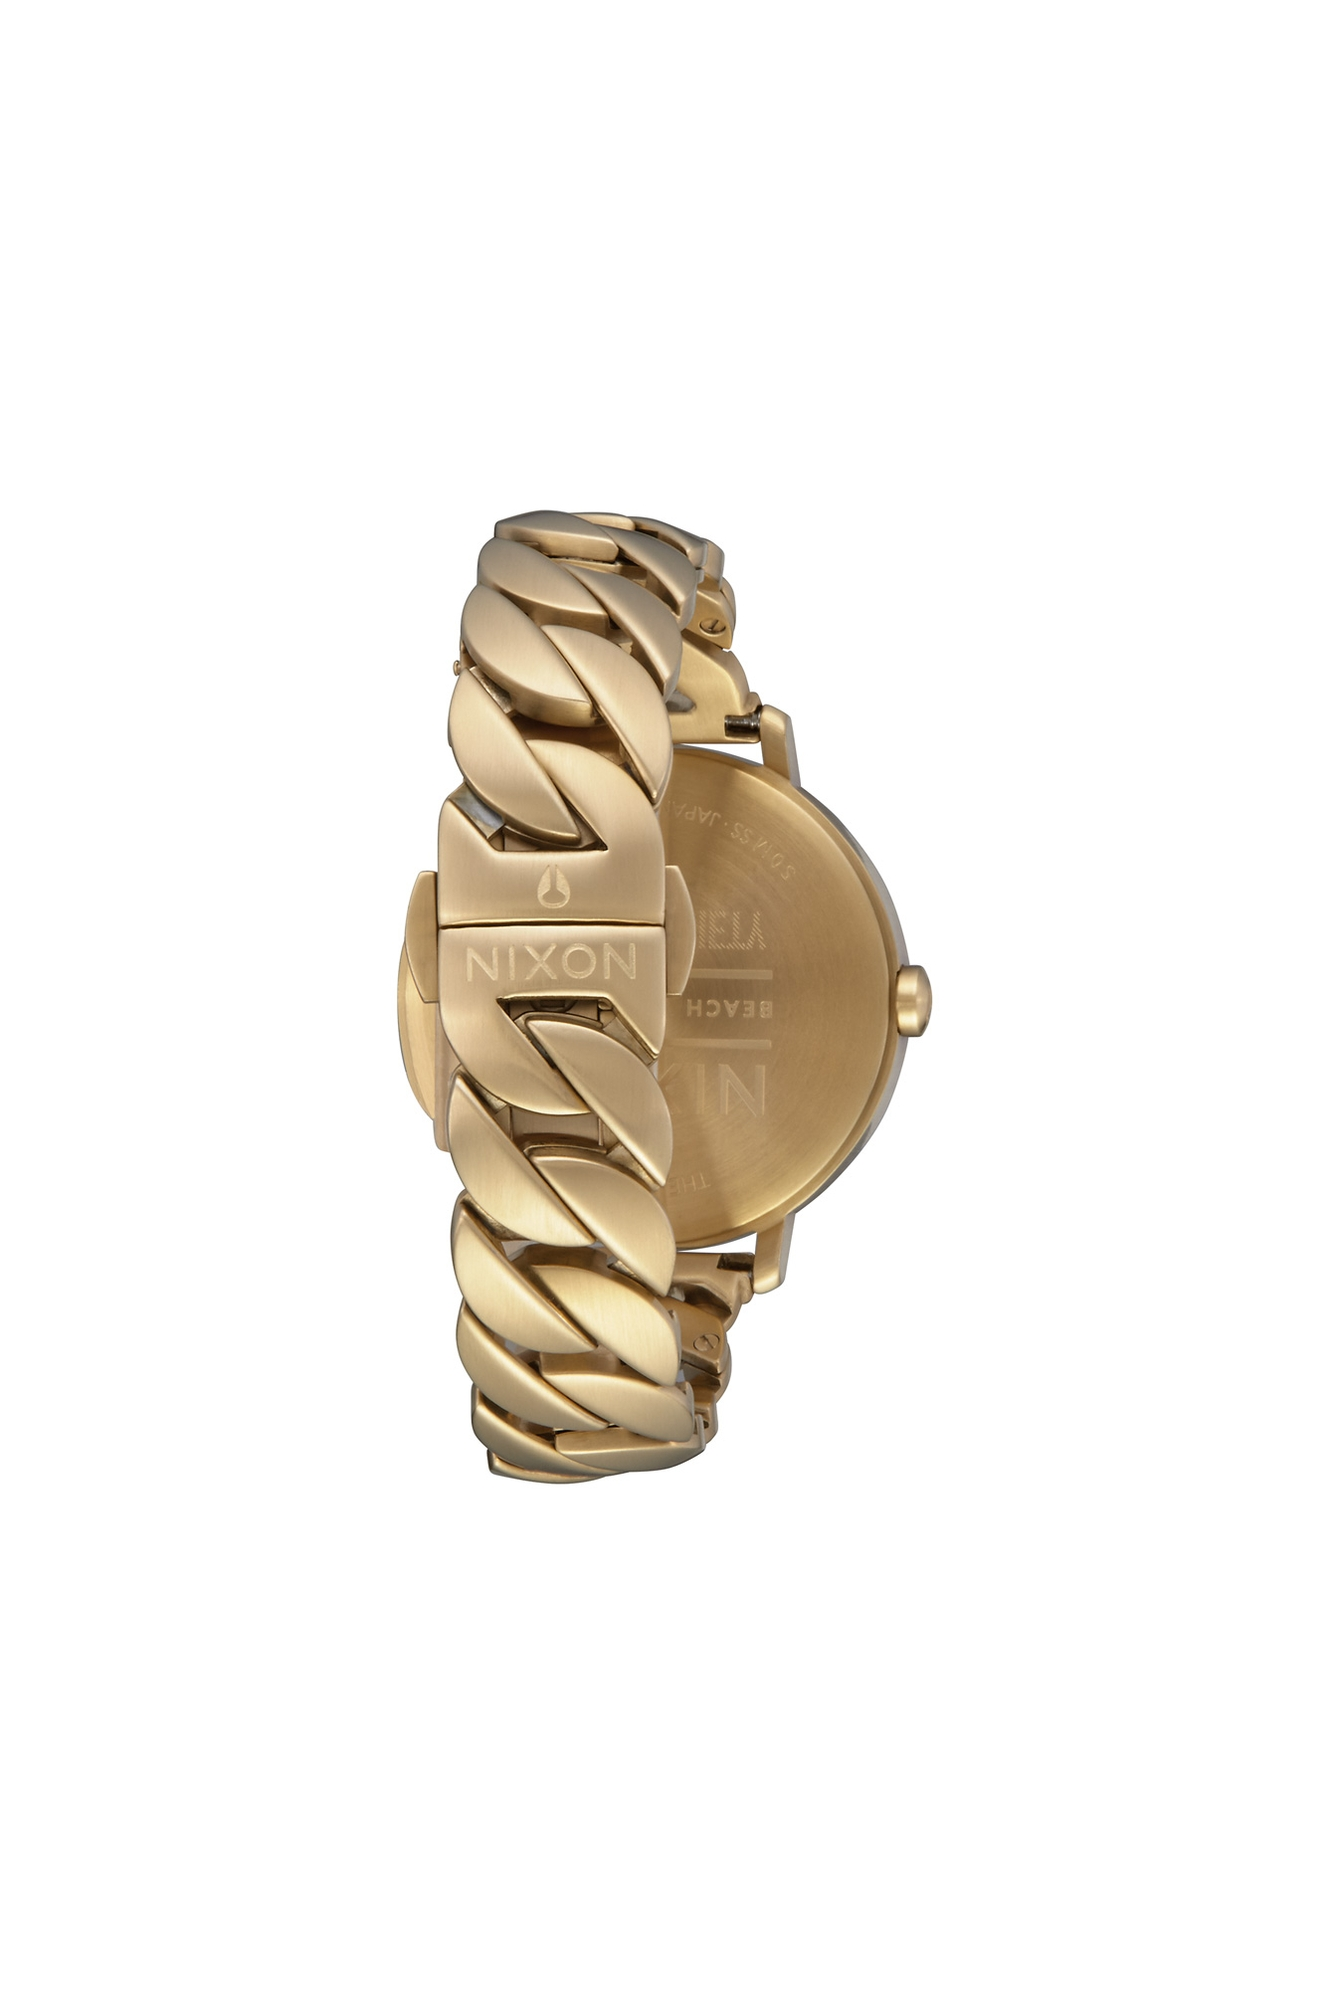 Nixon x Amuse Arrow Chain Watch